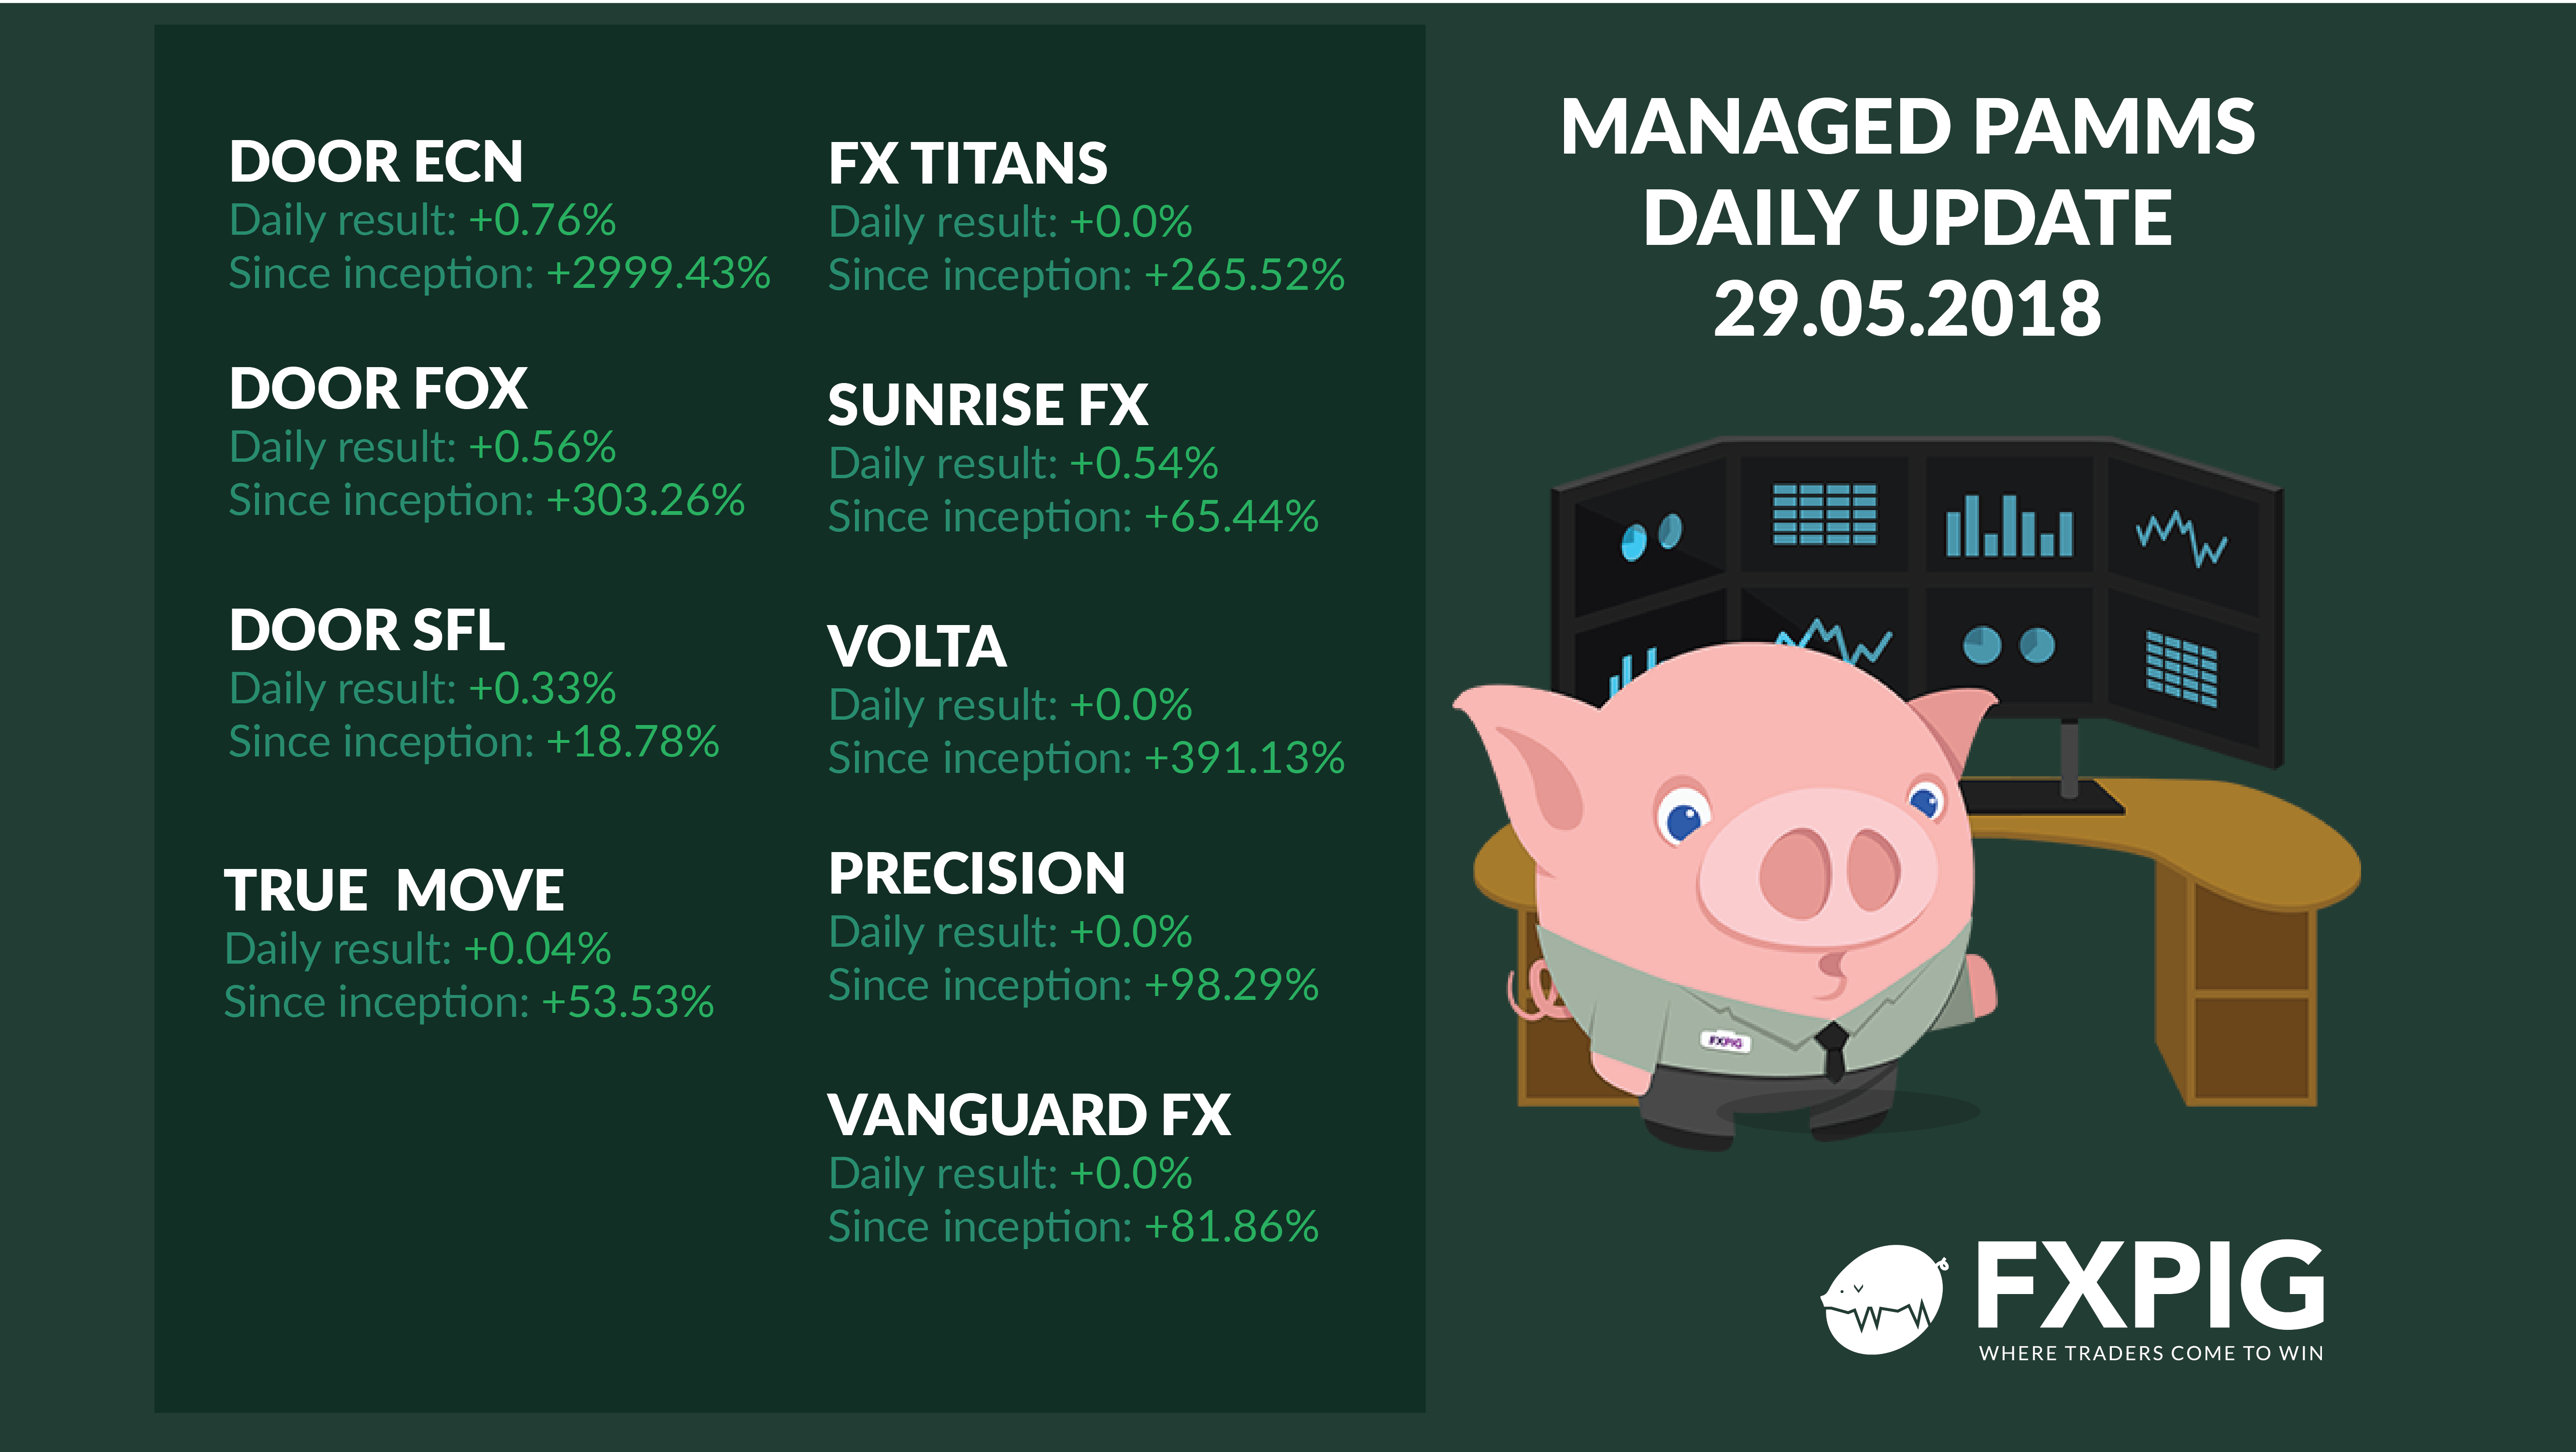 FOREX_daily-managed-accounts2905_FXPIG